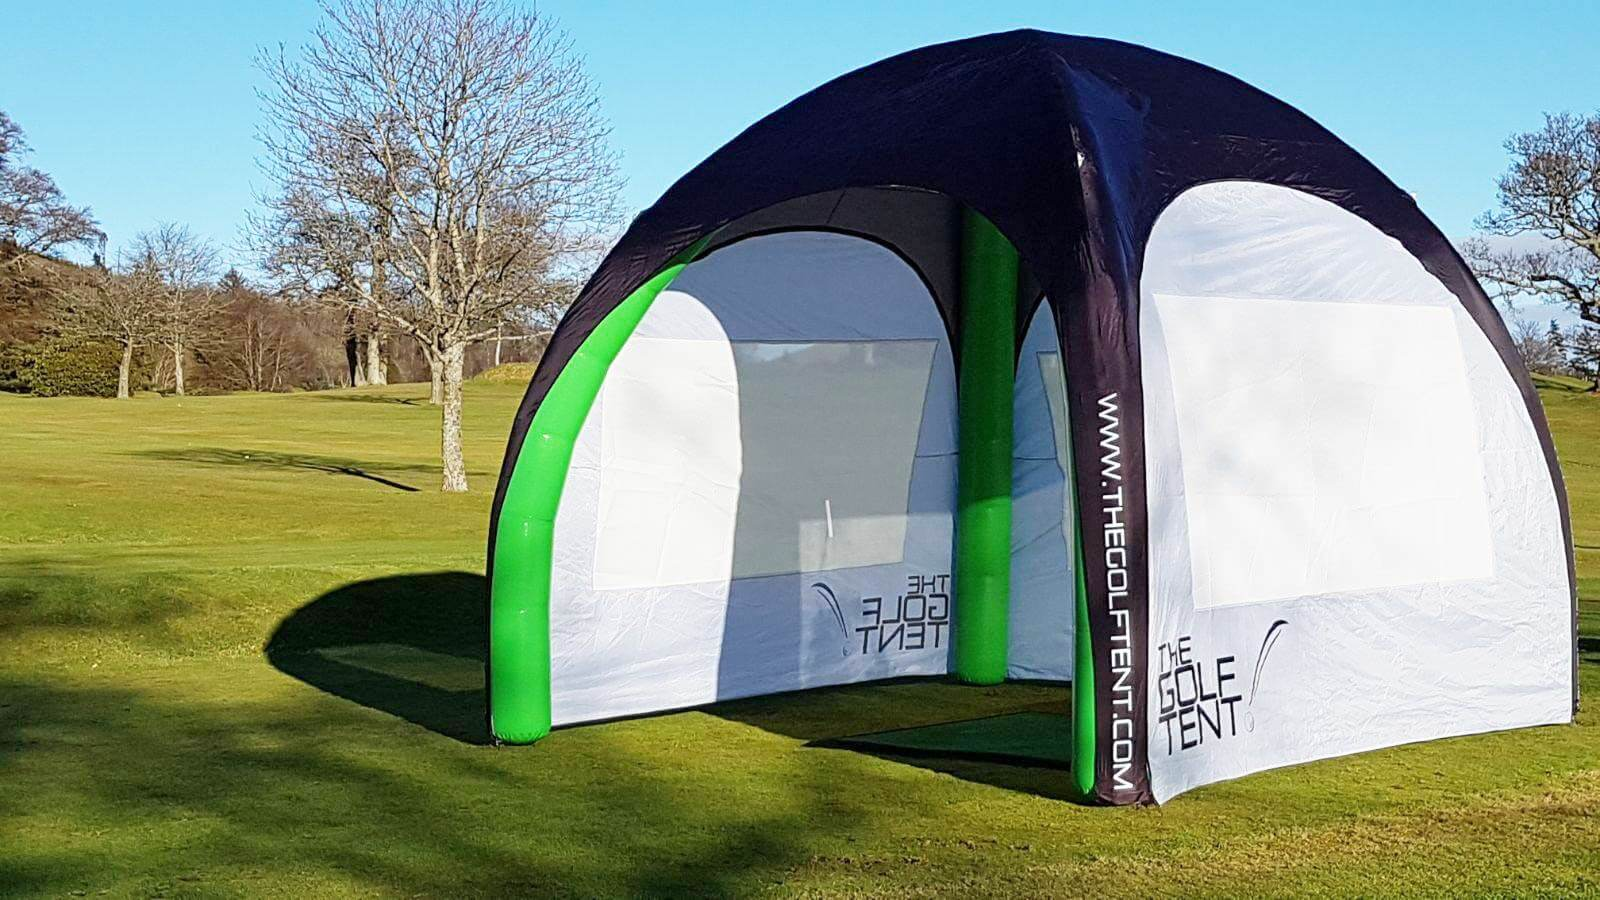 golf-tent-invention-product-design